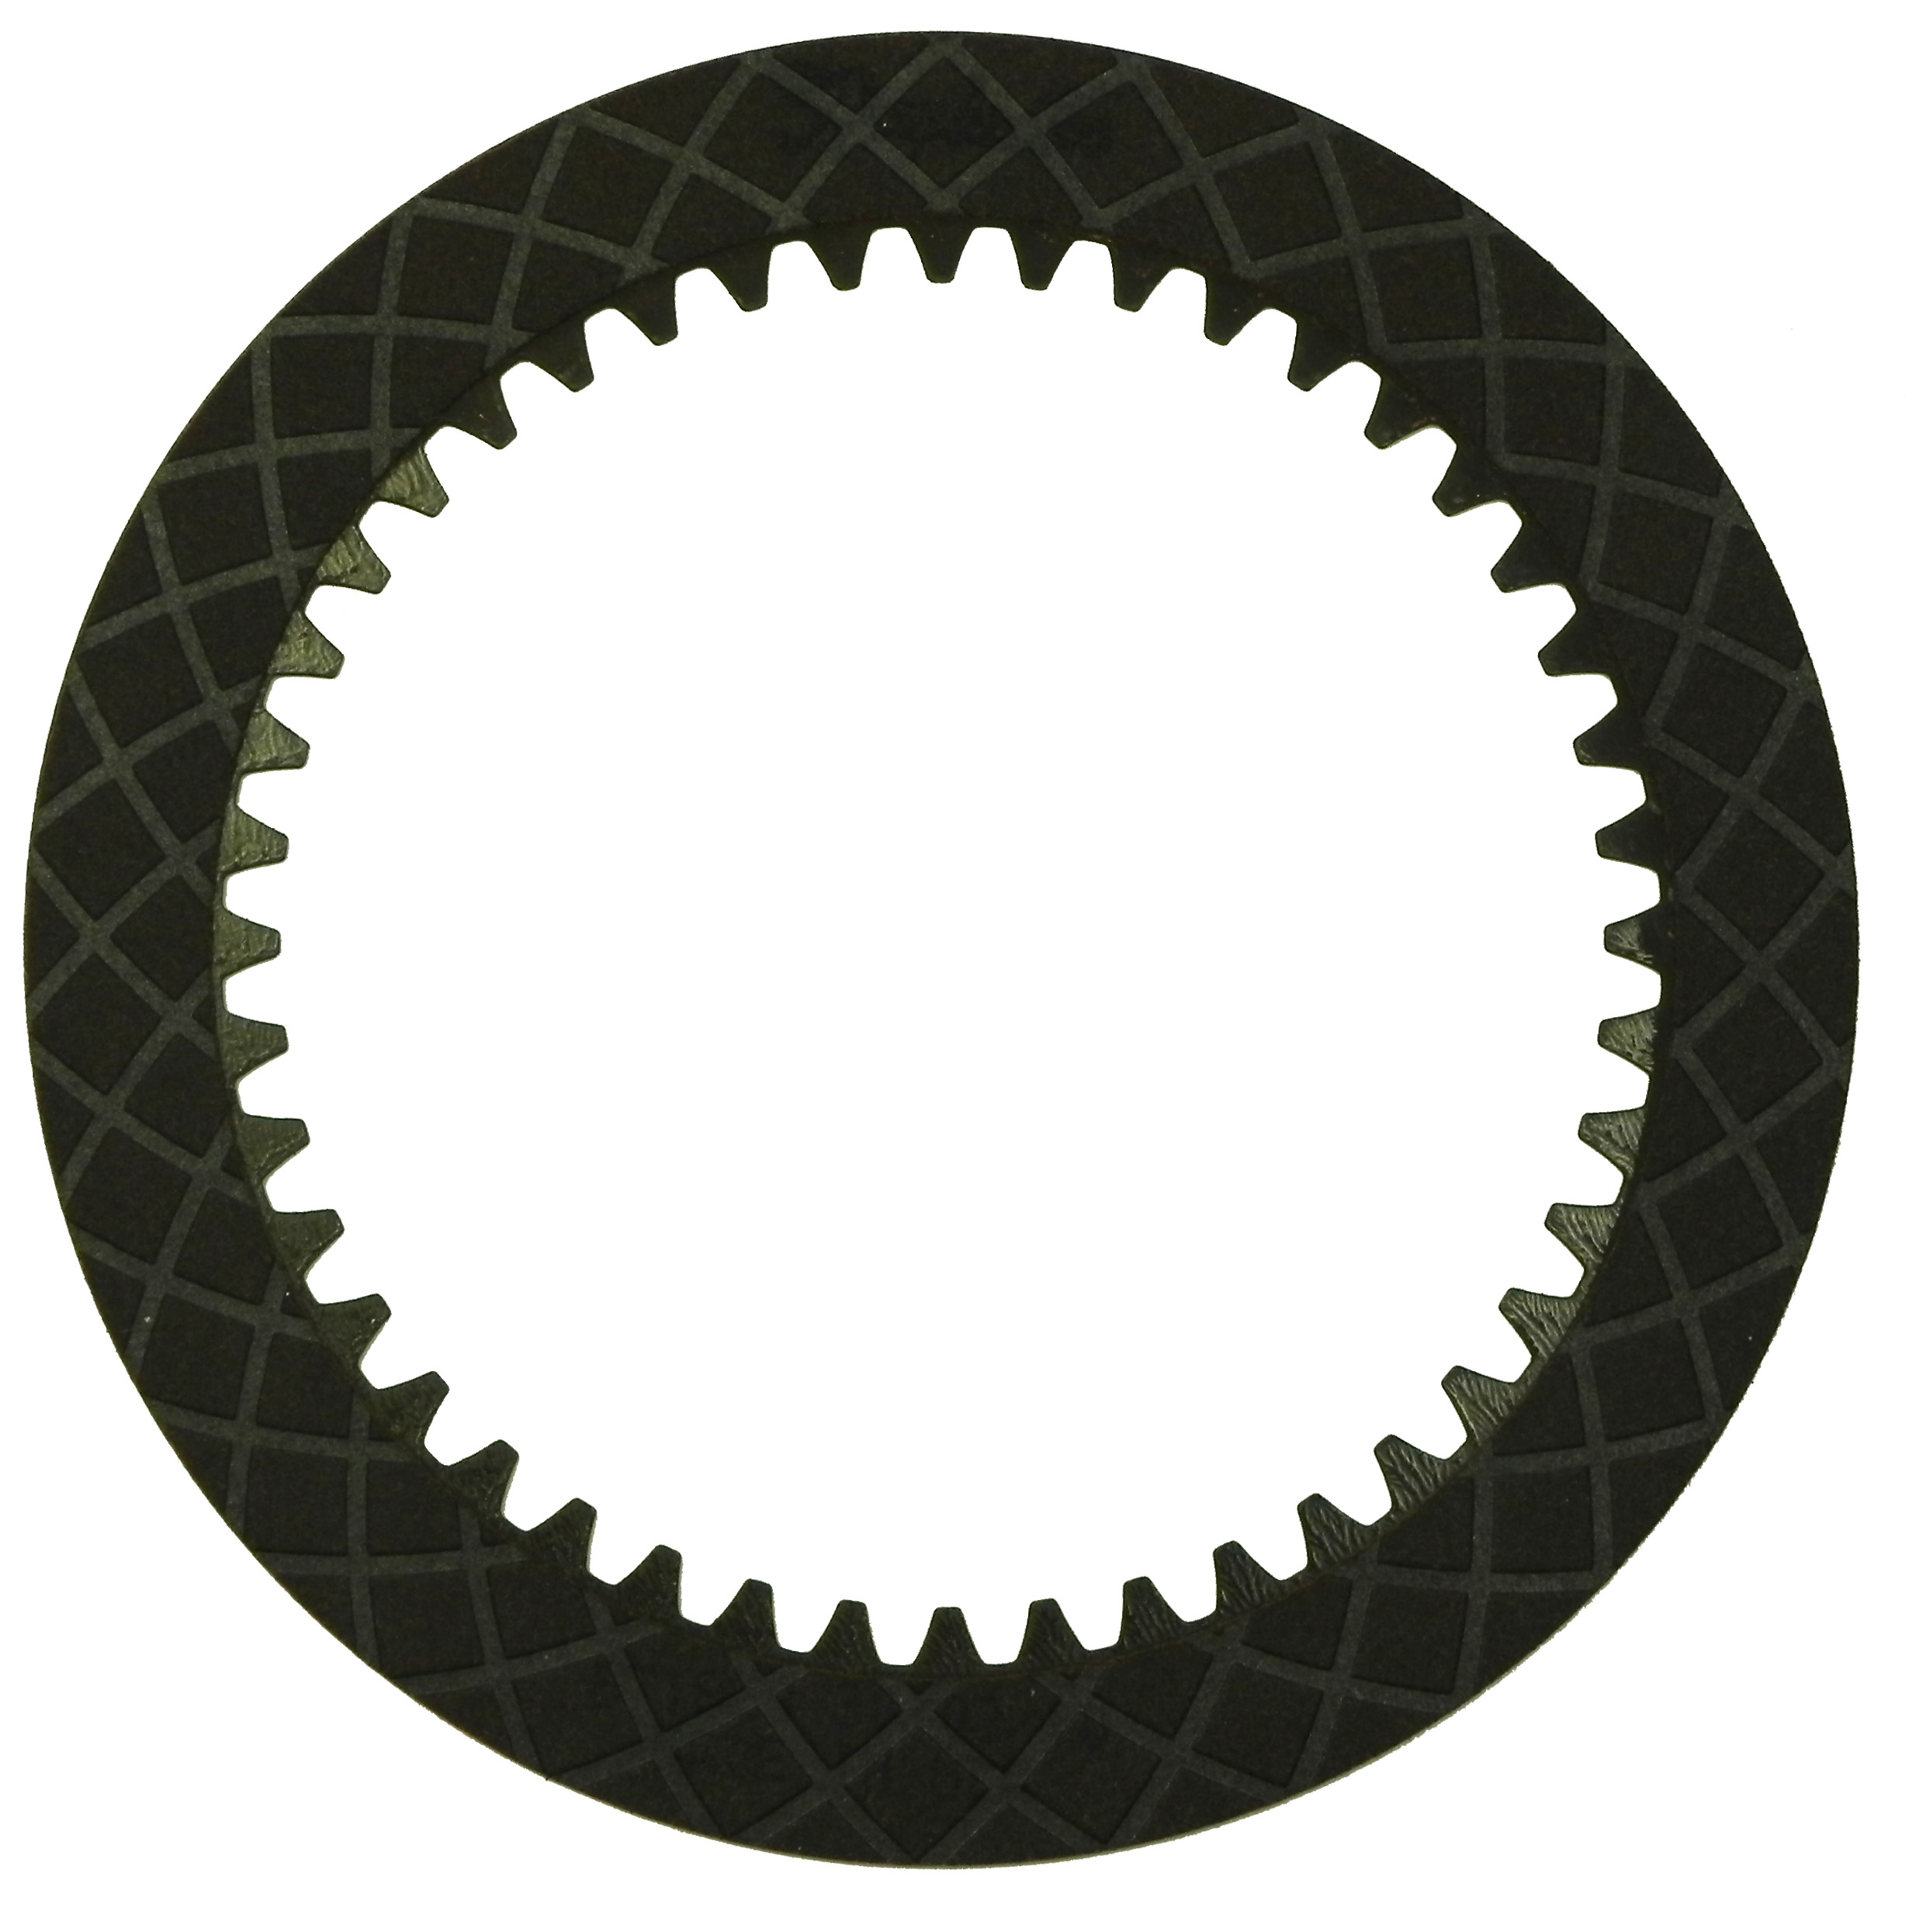 R571820 | 1997-2002 Friction Clutch Plate GPX 1st, 2nd GPX